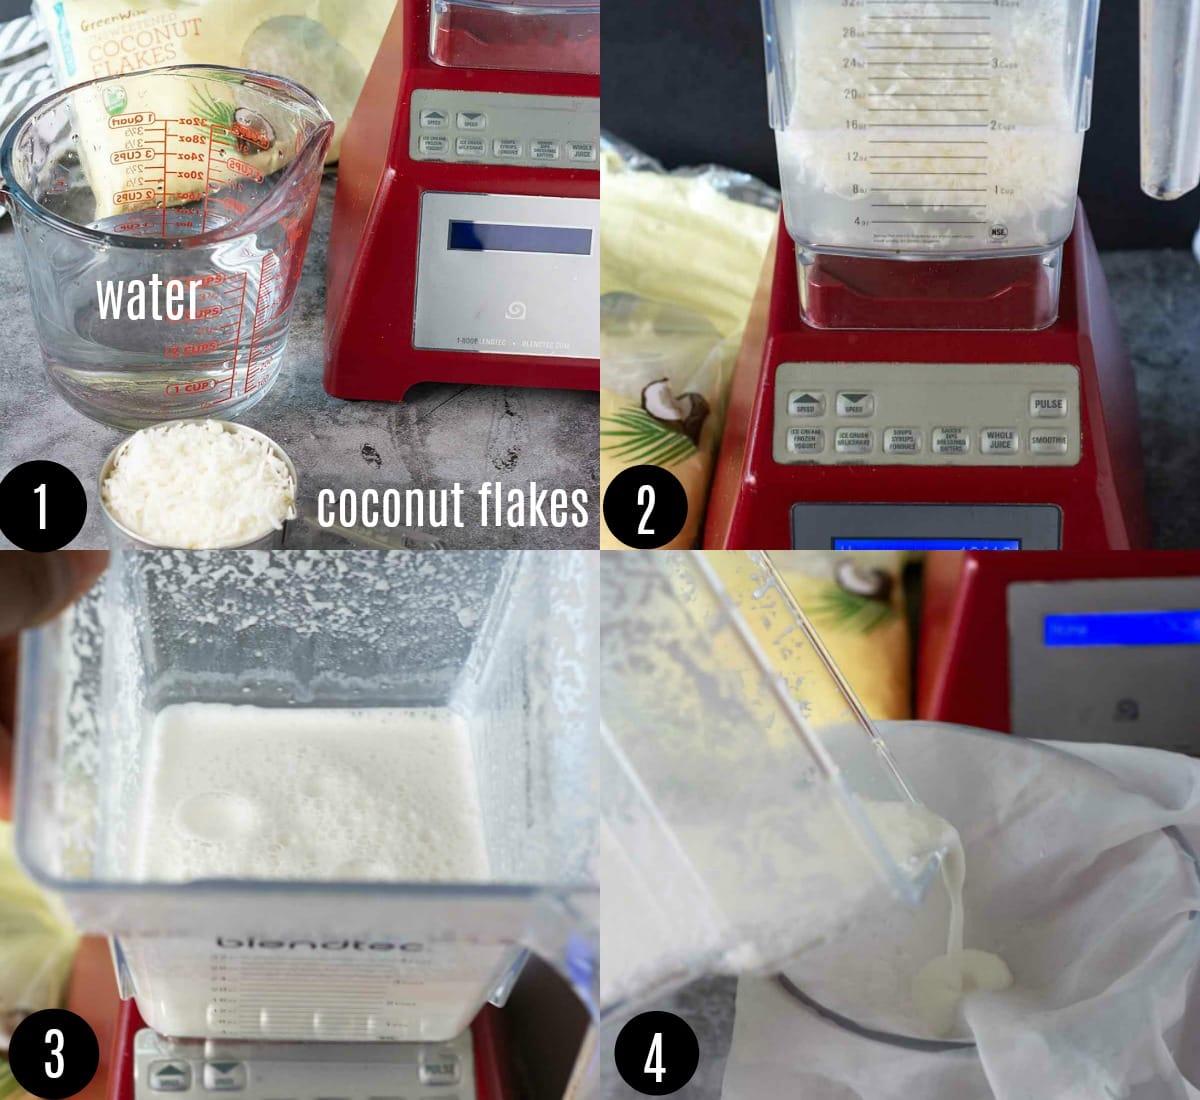 Step by step photos showing how to make coconut milk from coconut flakes and water in a blender